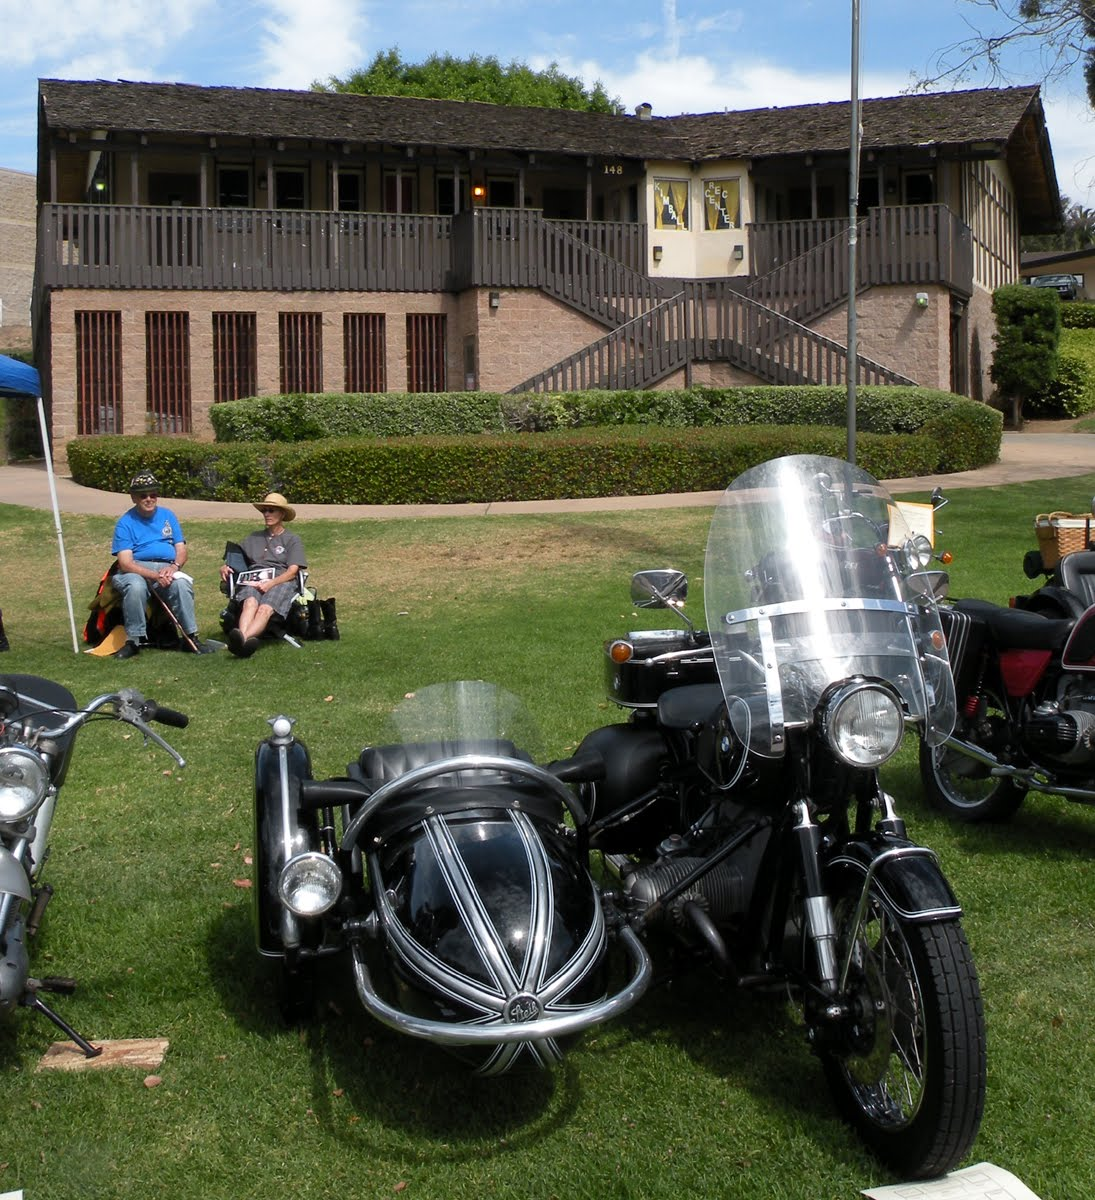 Steib Model 501 Sidecar (about 1950) And BMW R90 / 6 Motorcycle